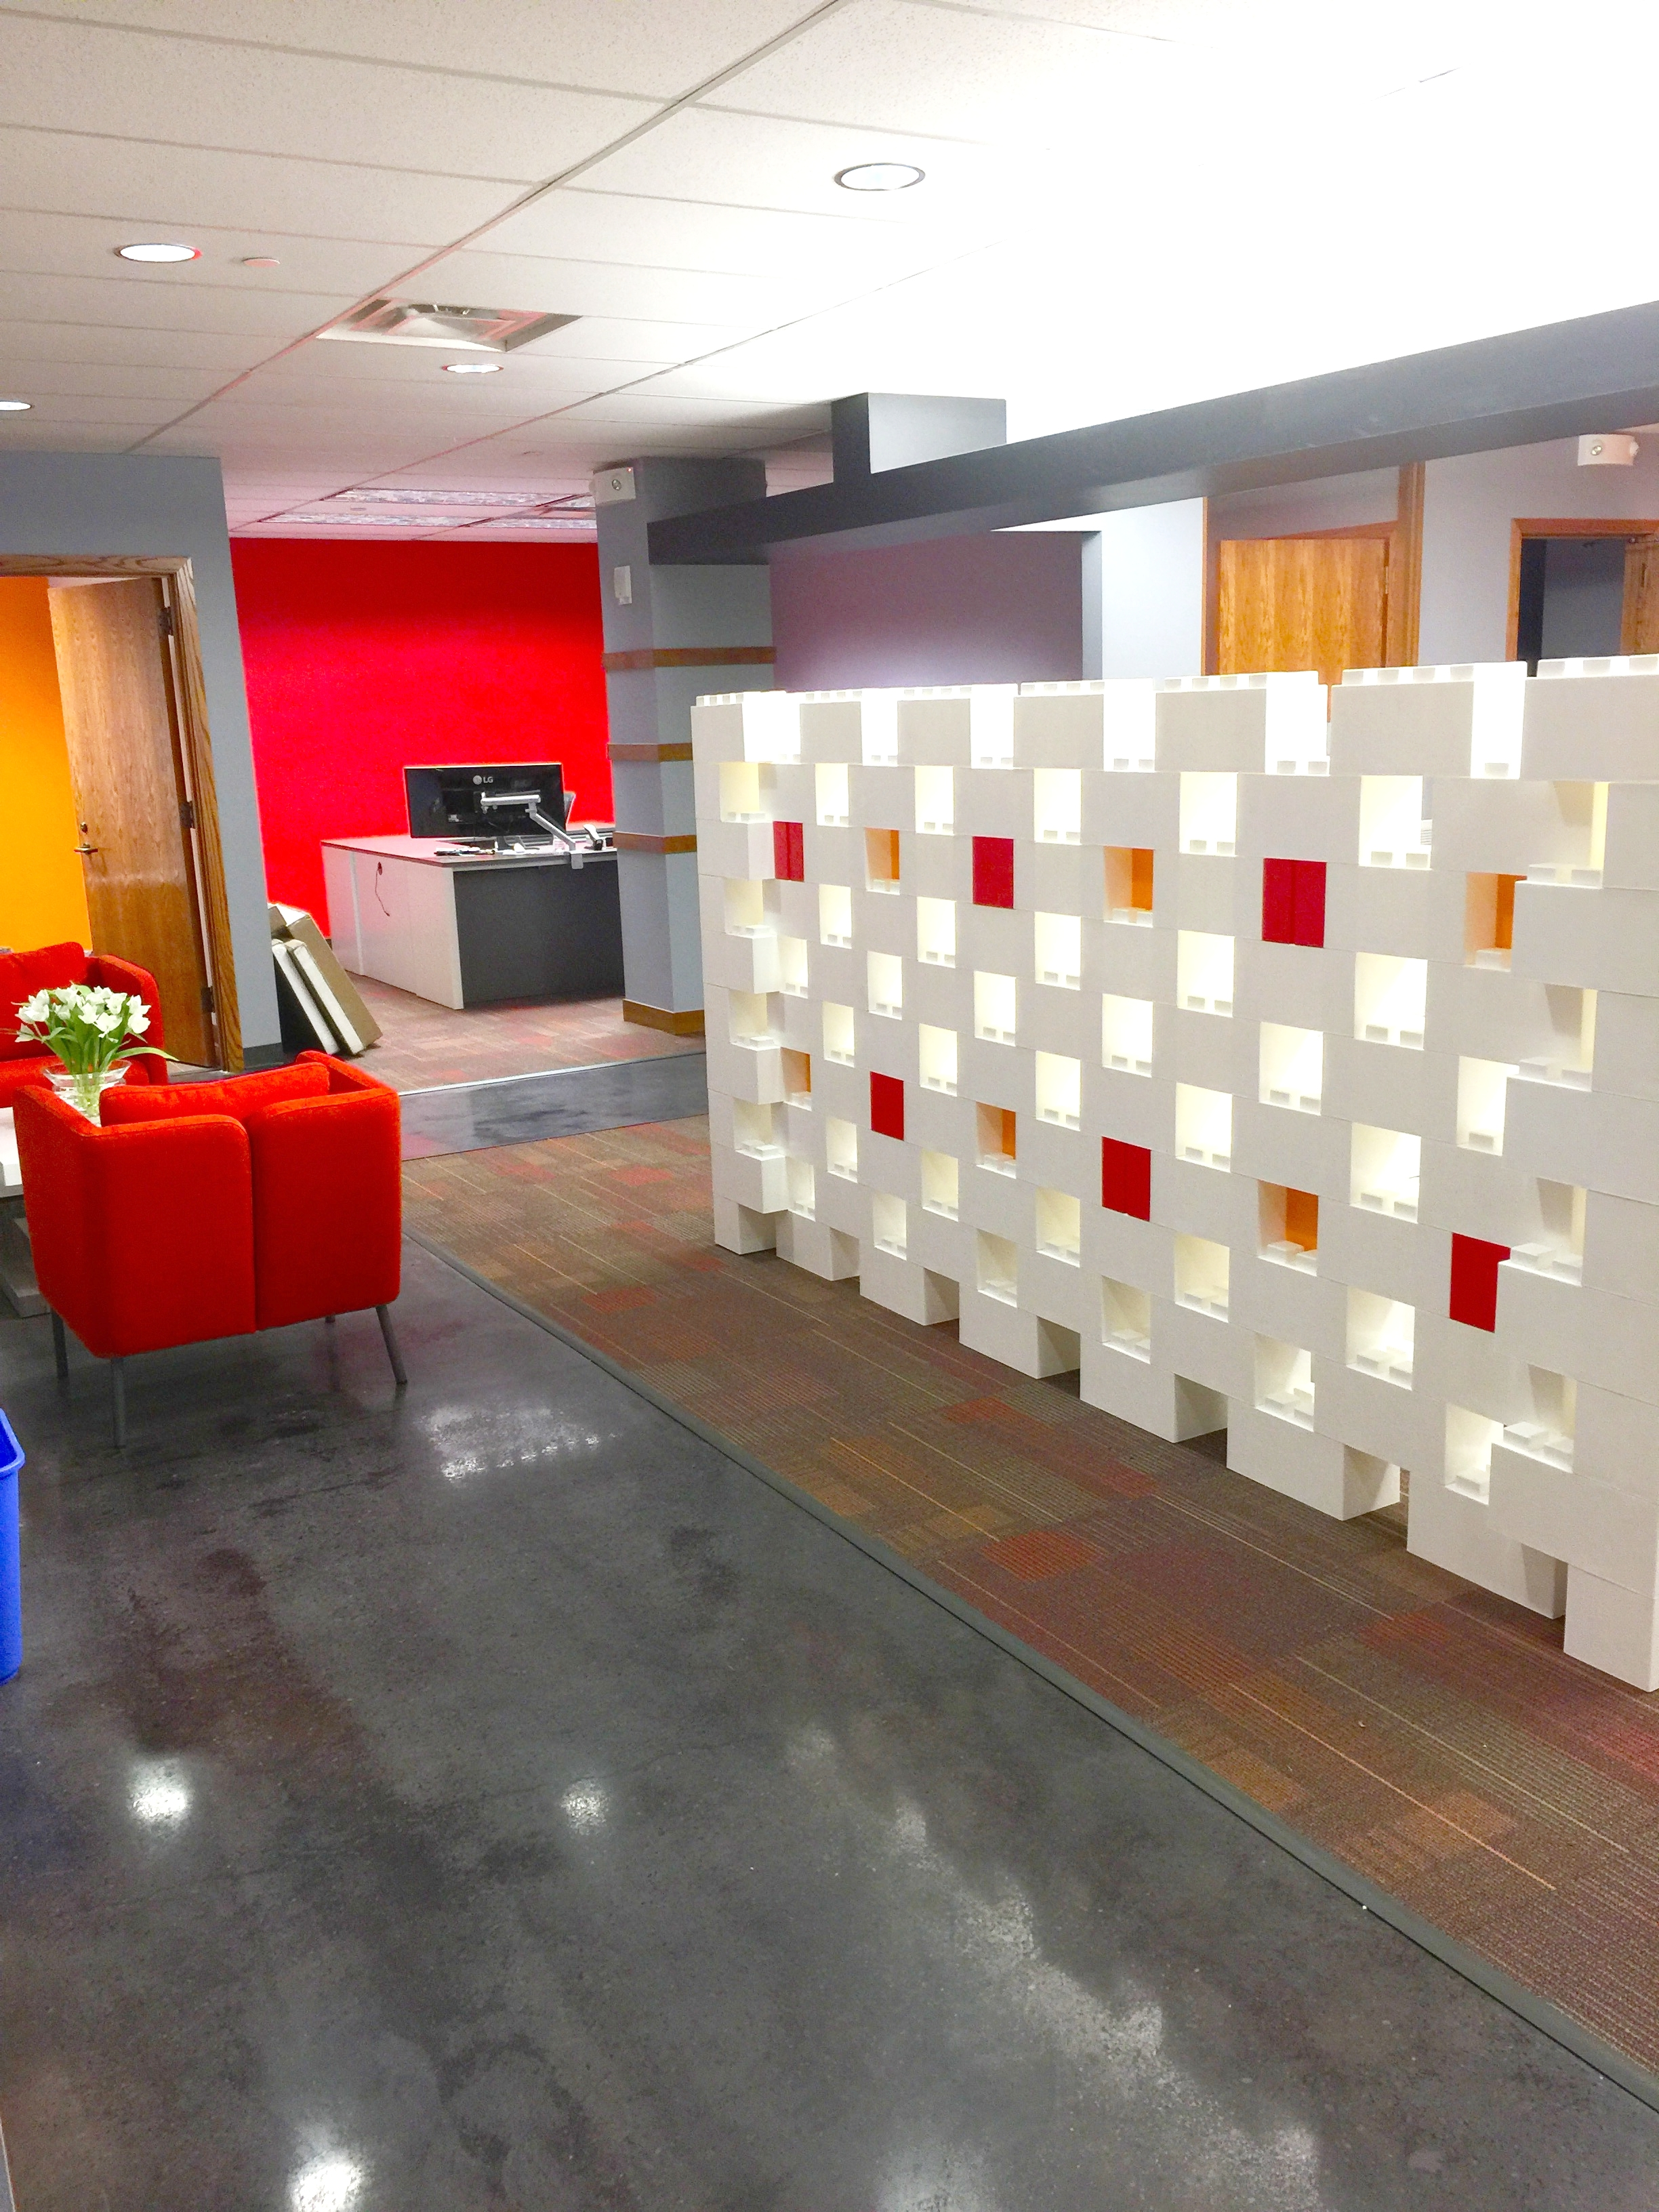 Add privacy to office spaces with unique designs that match office decor.